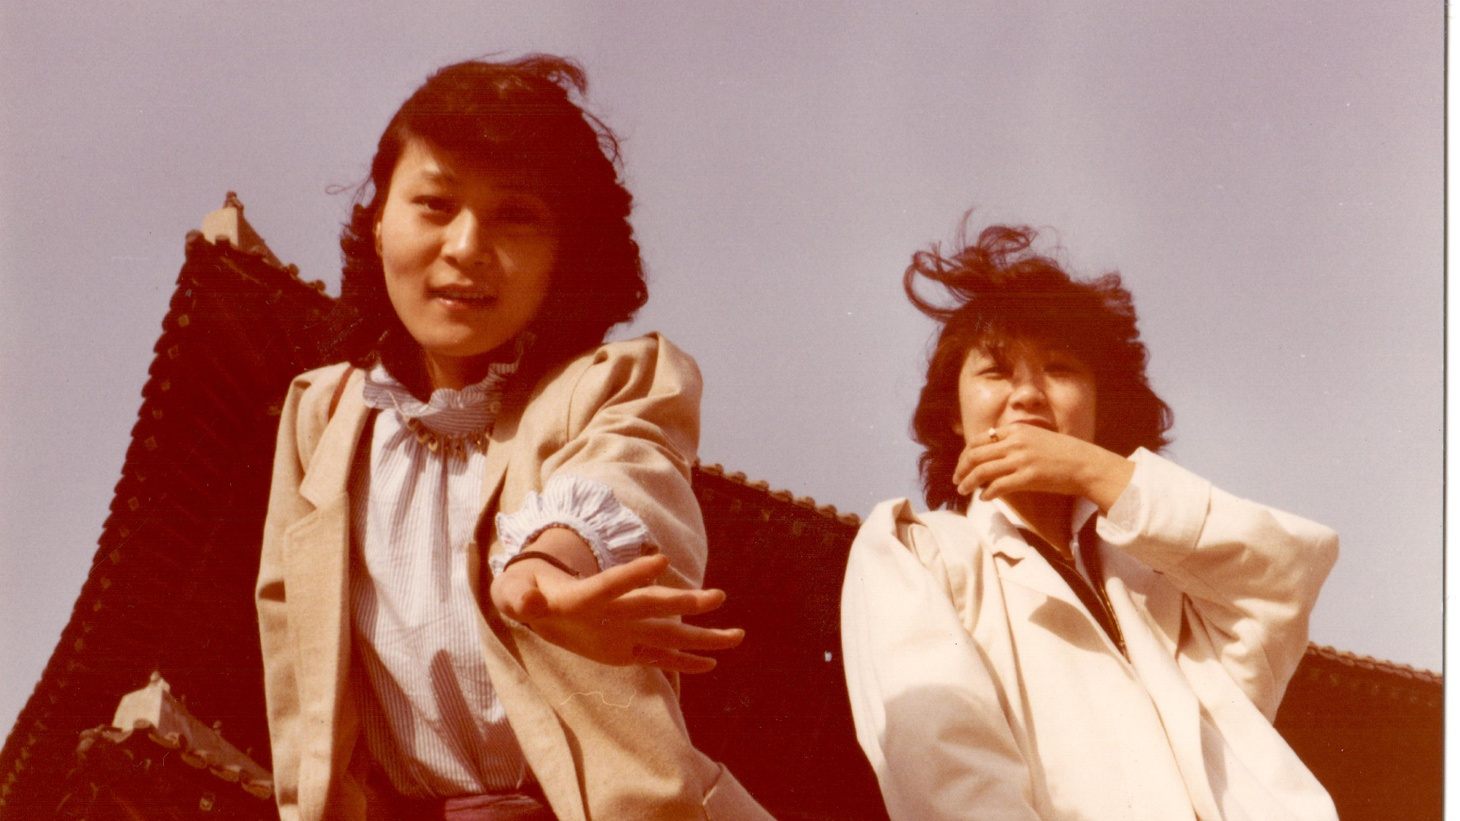 """Michelle Zauner, who records under the name Japanese Breakfast, featured her mother (left) on the cover art for her album, """"Psychopop."""" Zauner's new memoir is a heartfelt reflection of loss and the comfort of food, family, and heritage."""